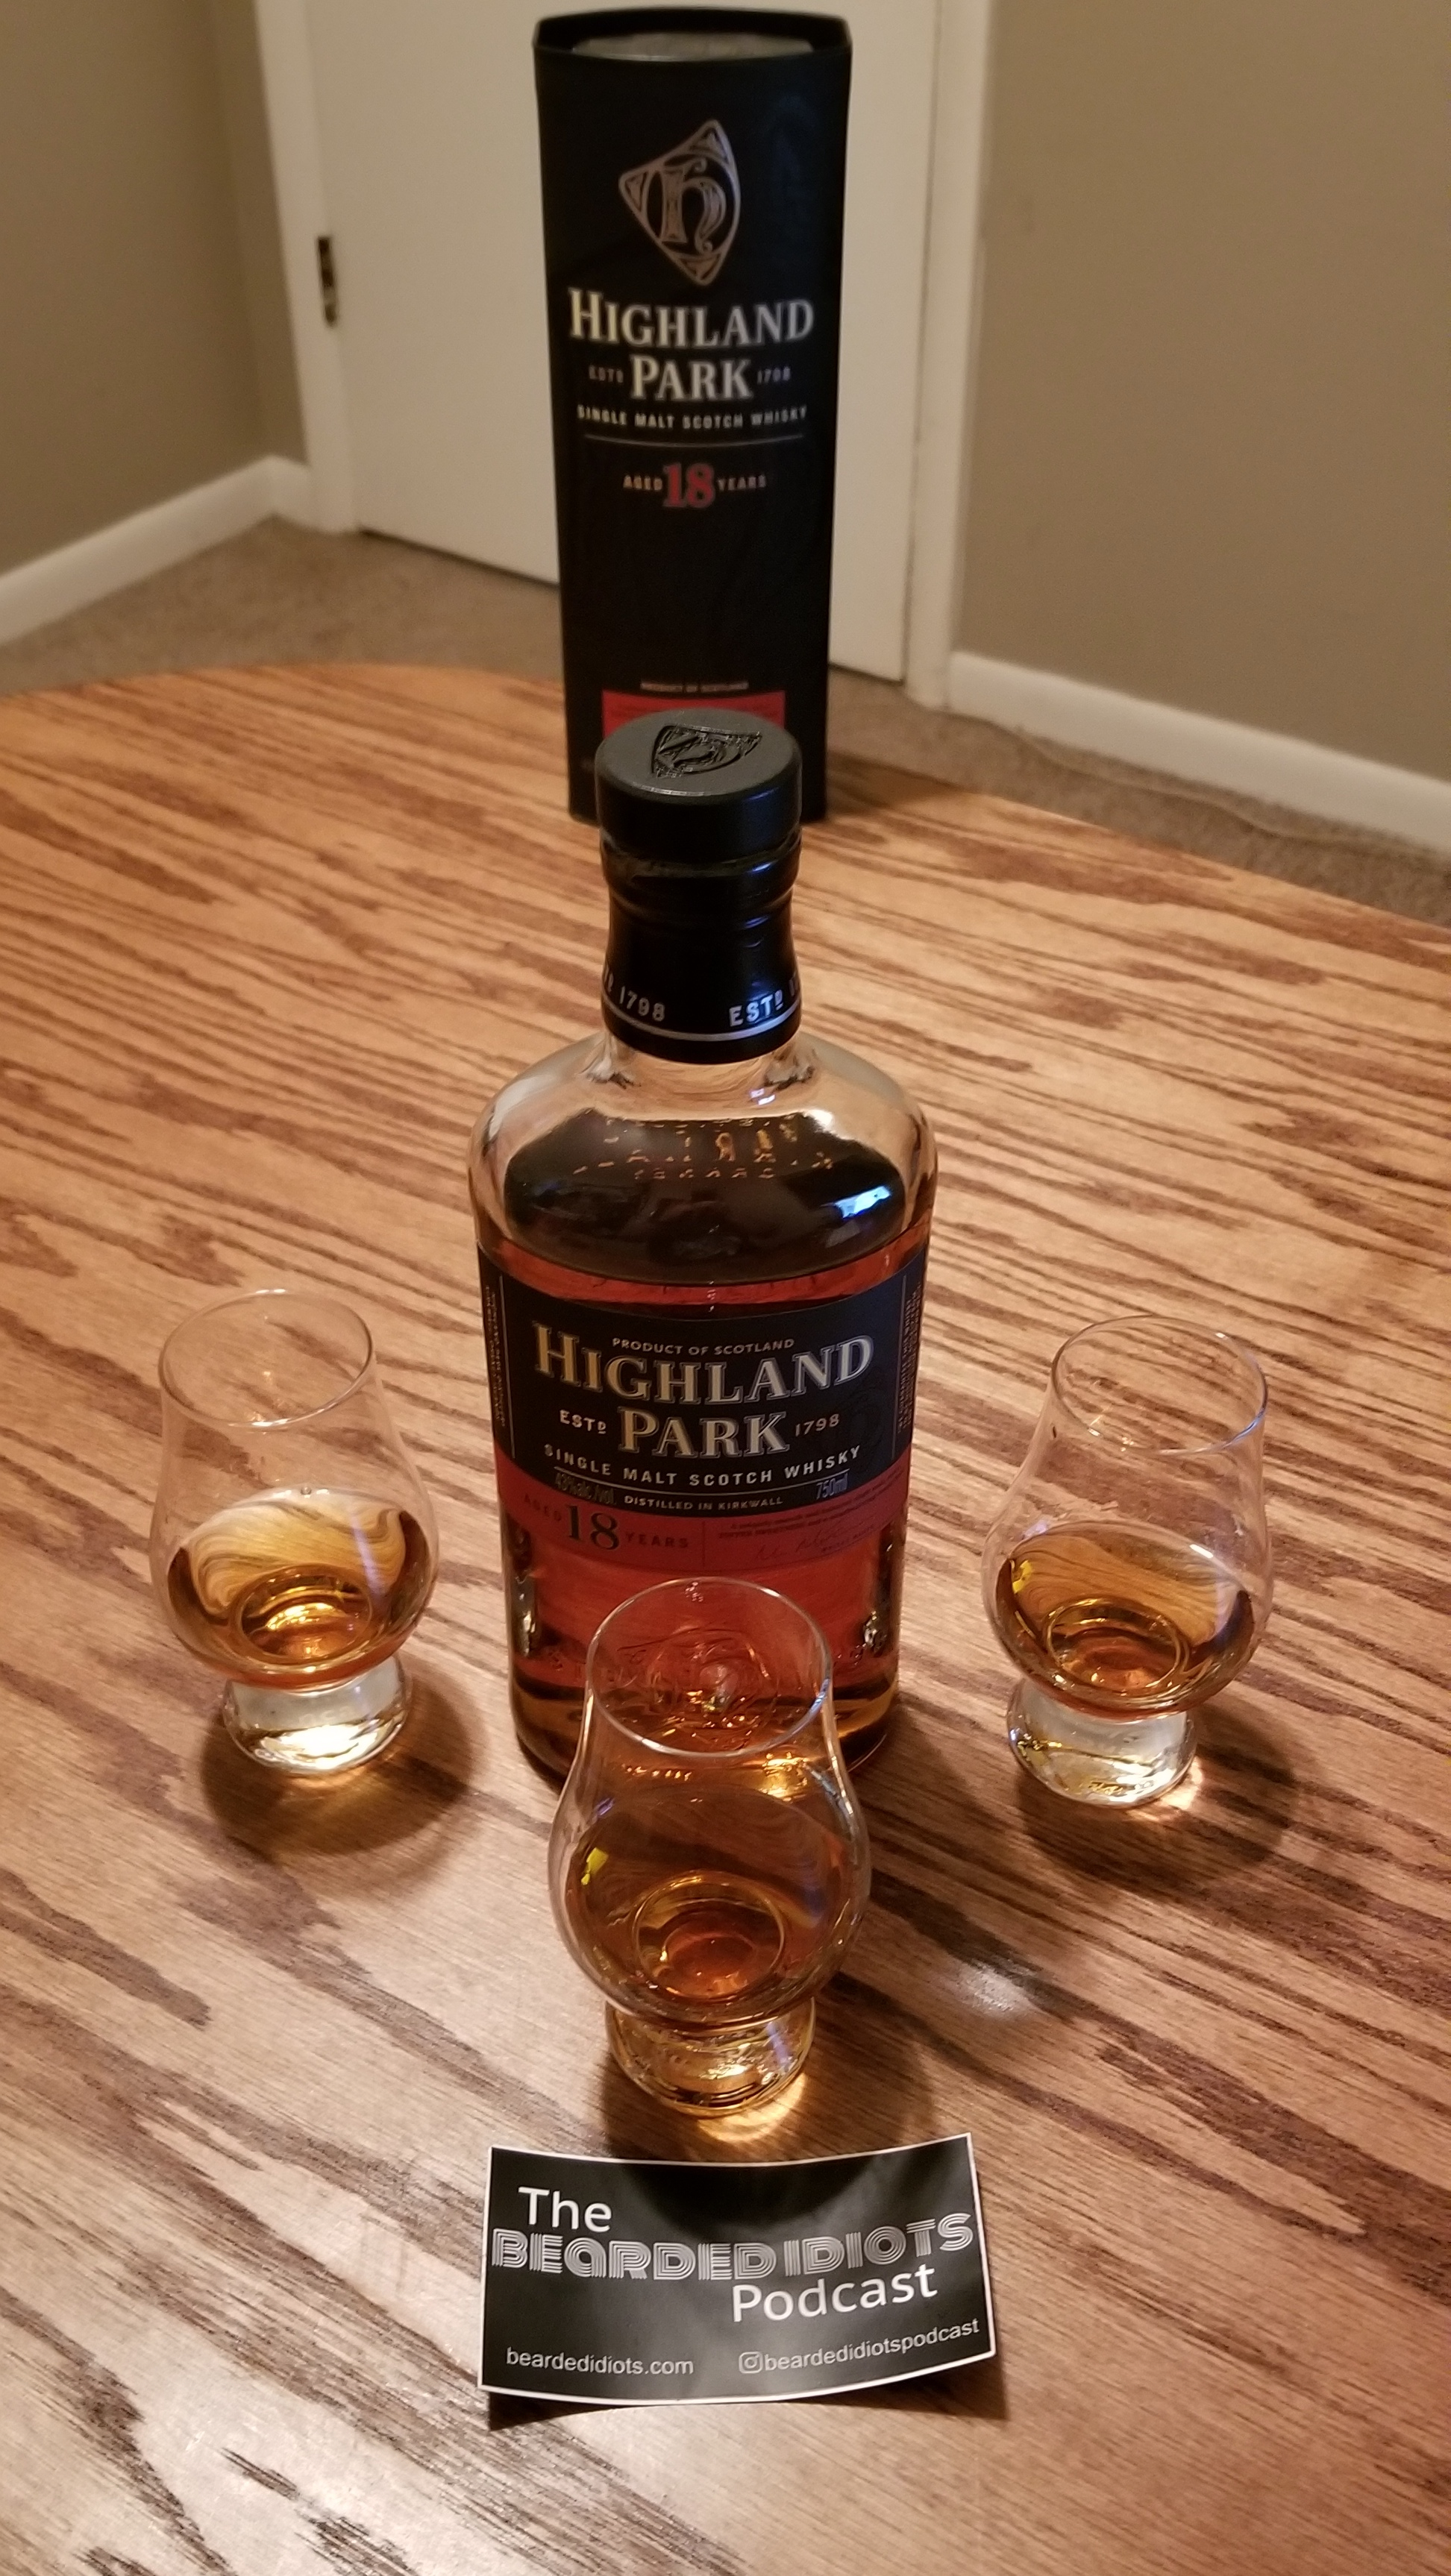 Episode the 19th - 2 Whiskey review's, white & clean girl, Stayin' Alive, and the Mandela Effect